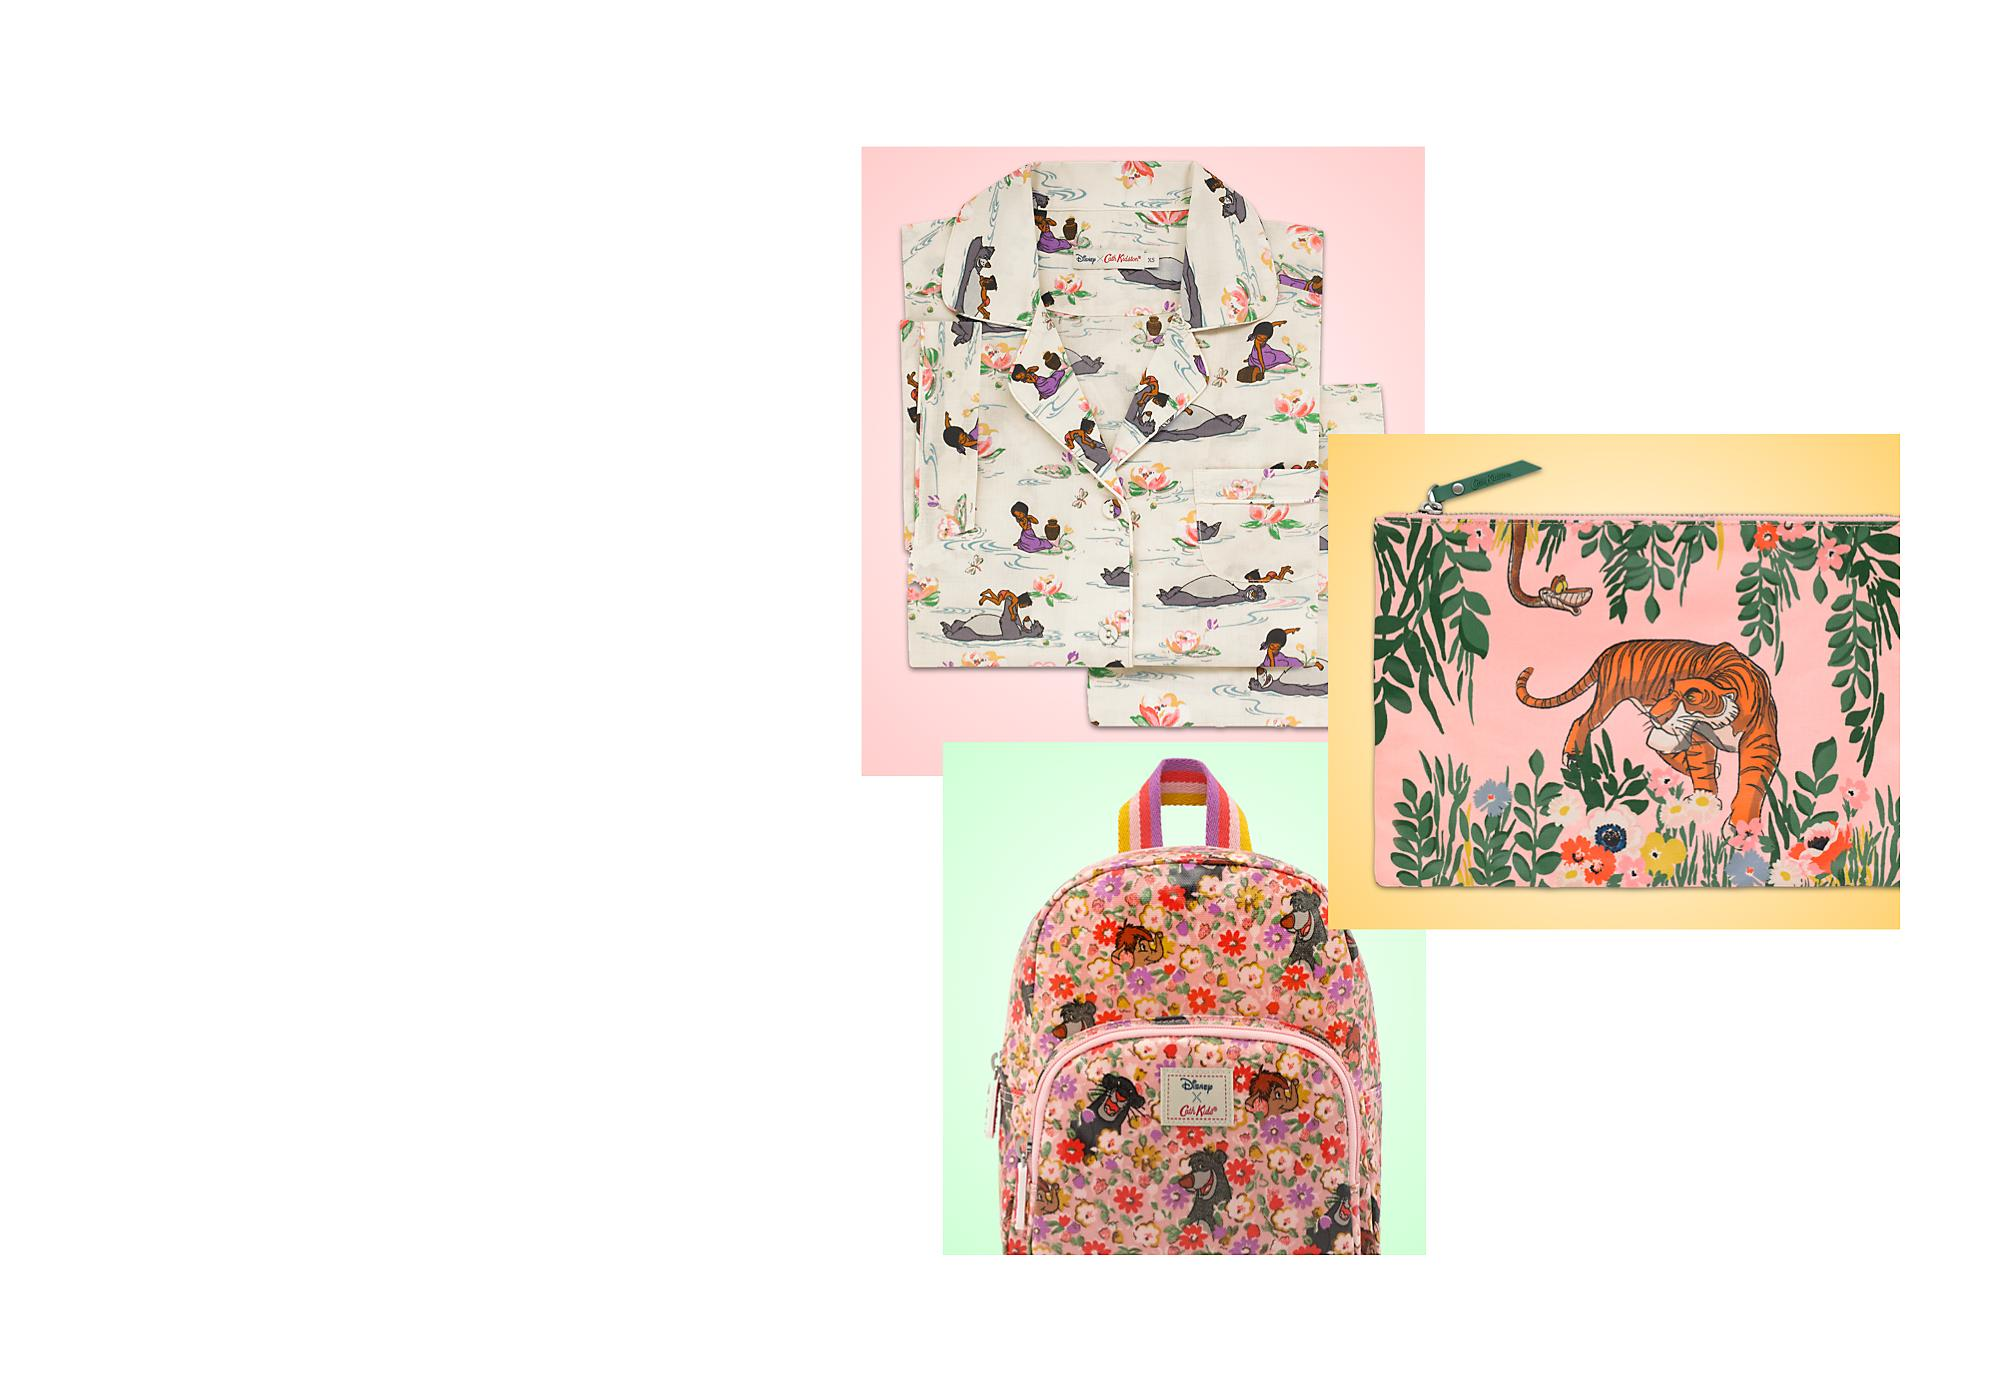 The Bare Necessities Discover our wild Cath Kidston x Disney Jungle Book collection of clothing, accessories, homeware and more.